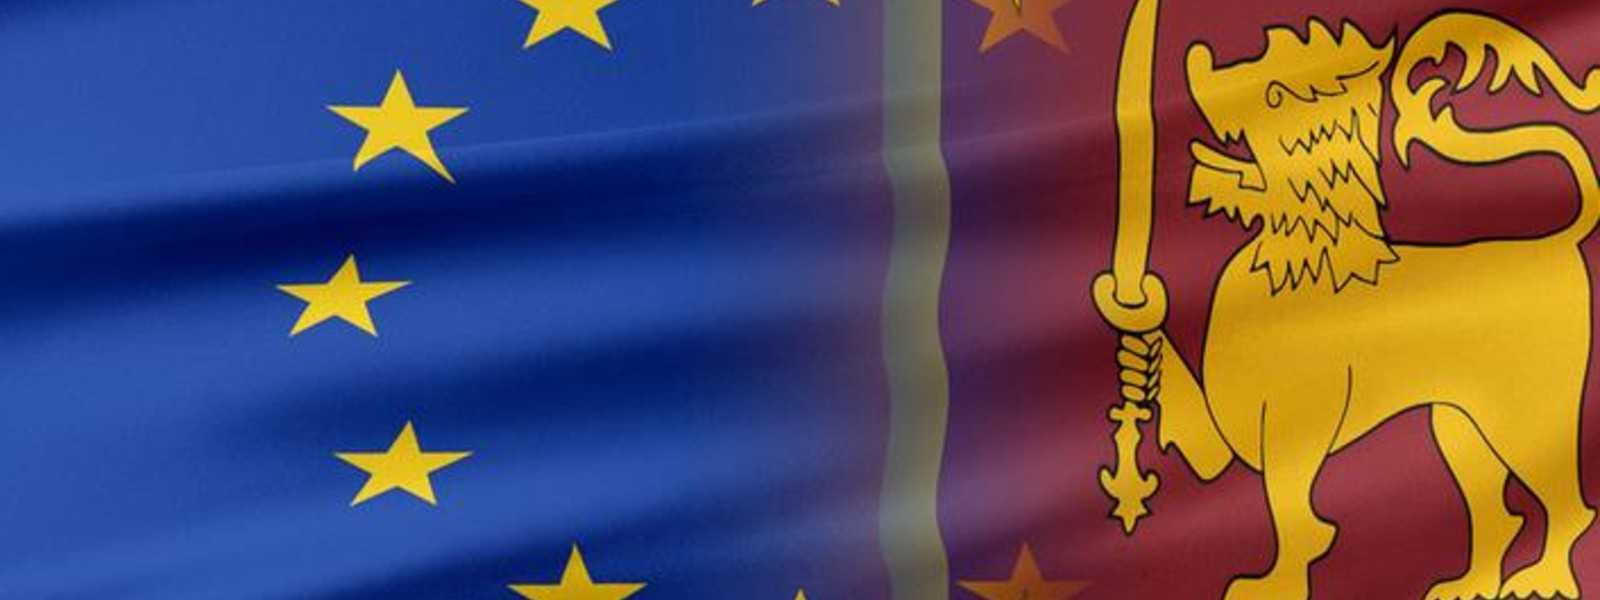 Sri Lanka informs EU of action to review PTA and discusses GSP+